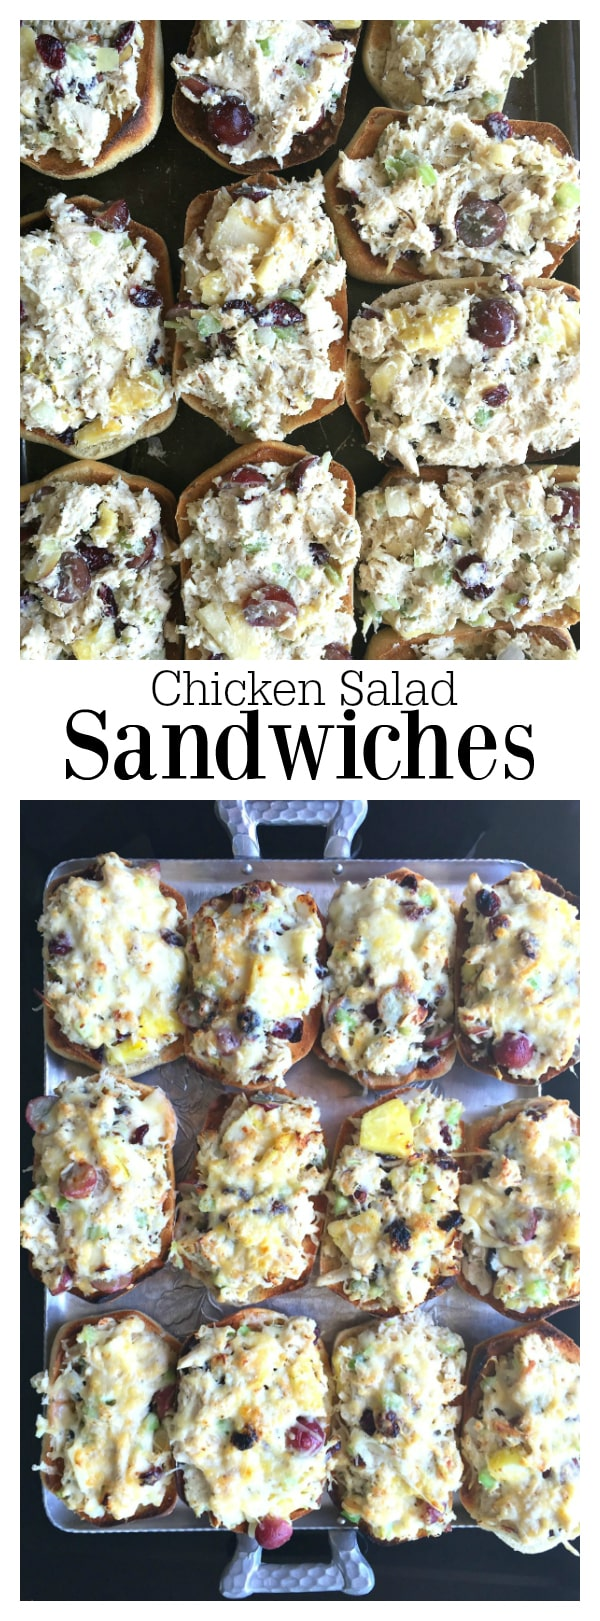 Chicken Salad Sandwiches with grapes and pineapple